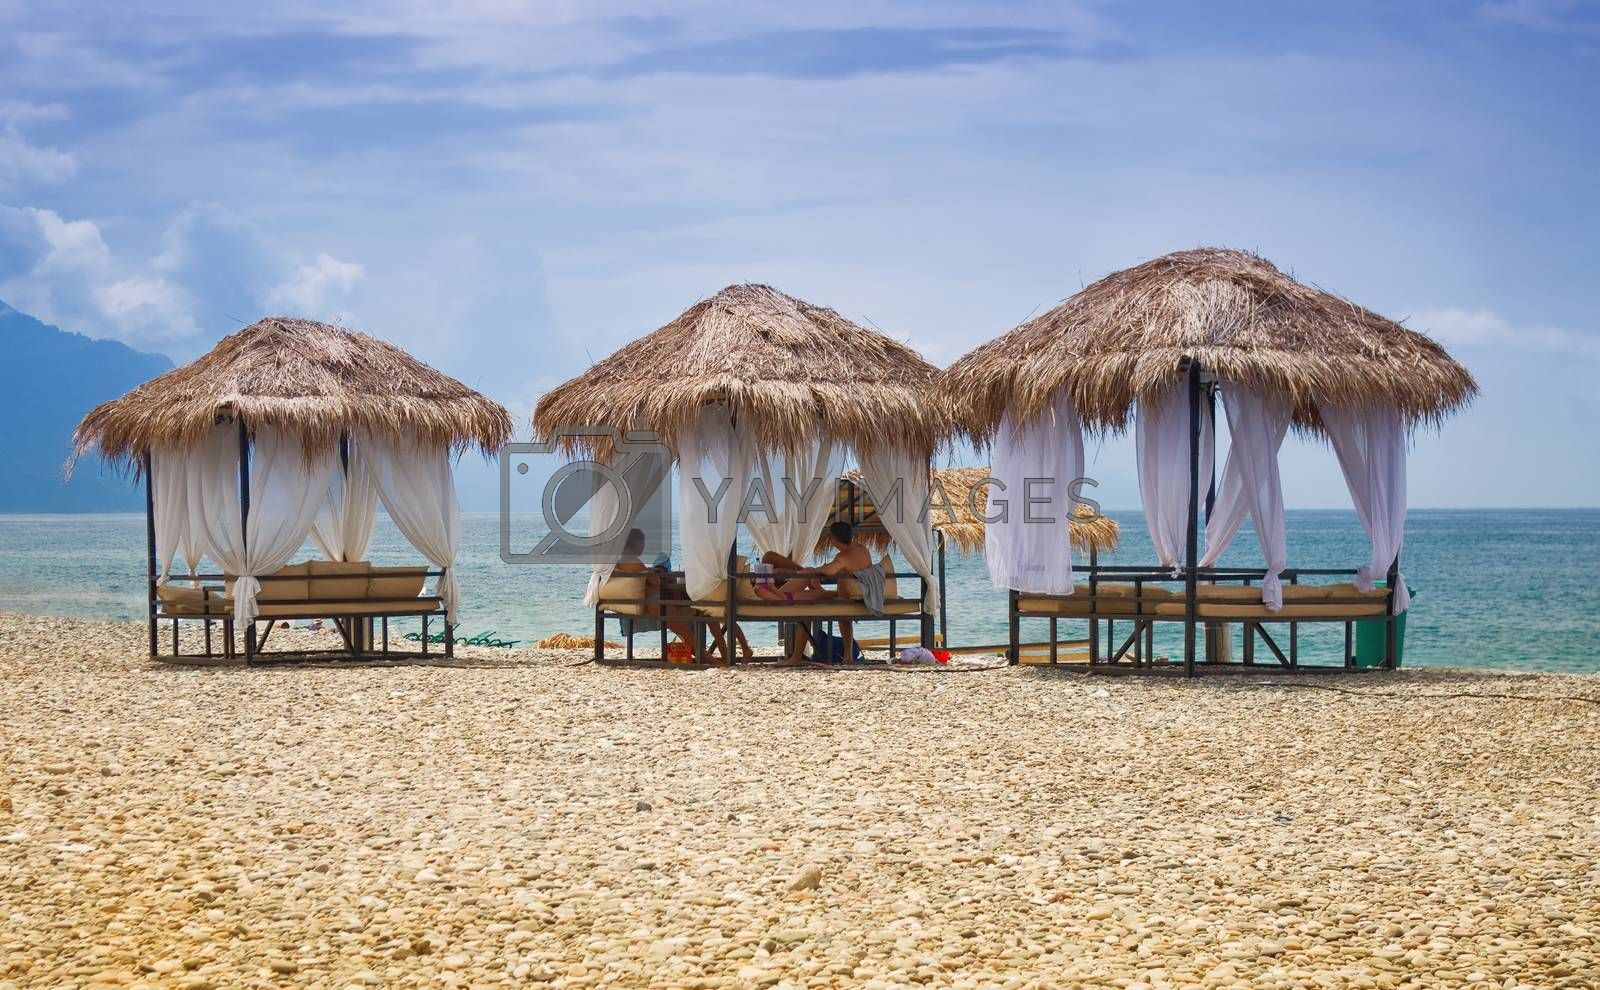 beach gazebos with thatched roofs